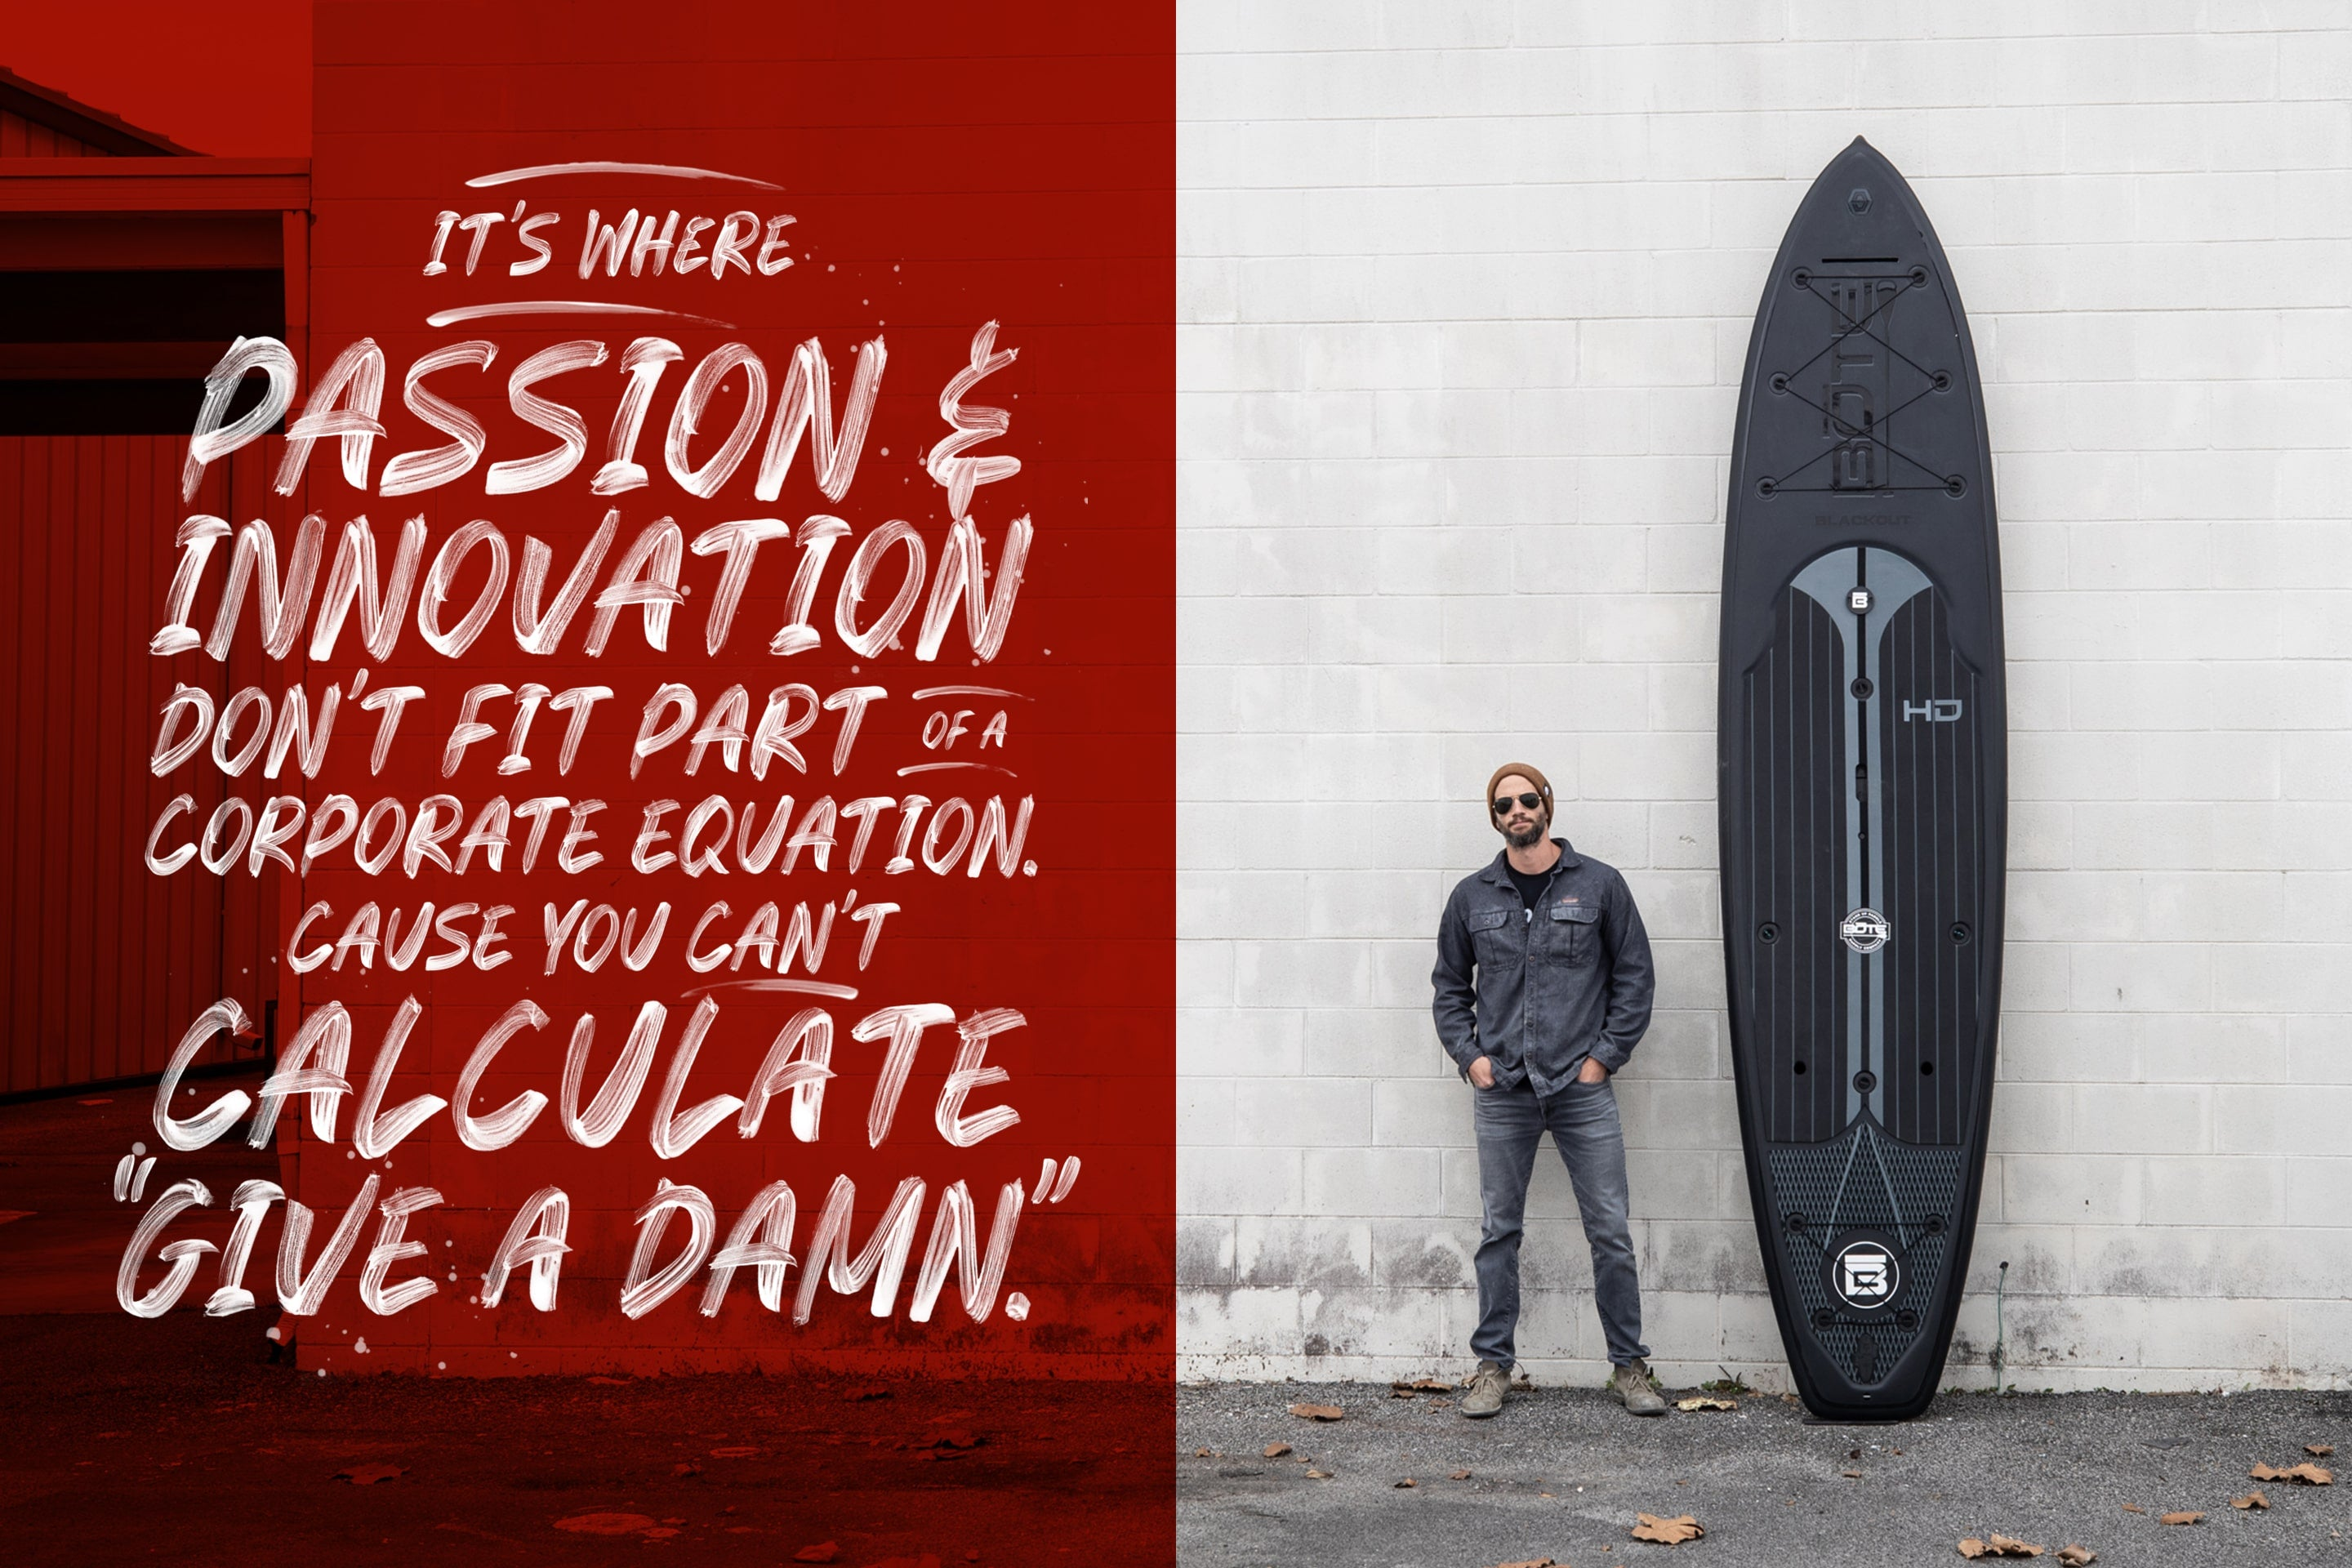 It's where passion and innovation don't fit part of a corporate equation. Cause you can't calculate give a damn.